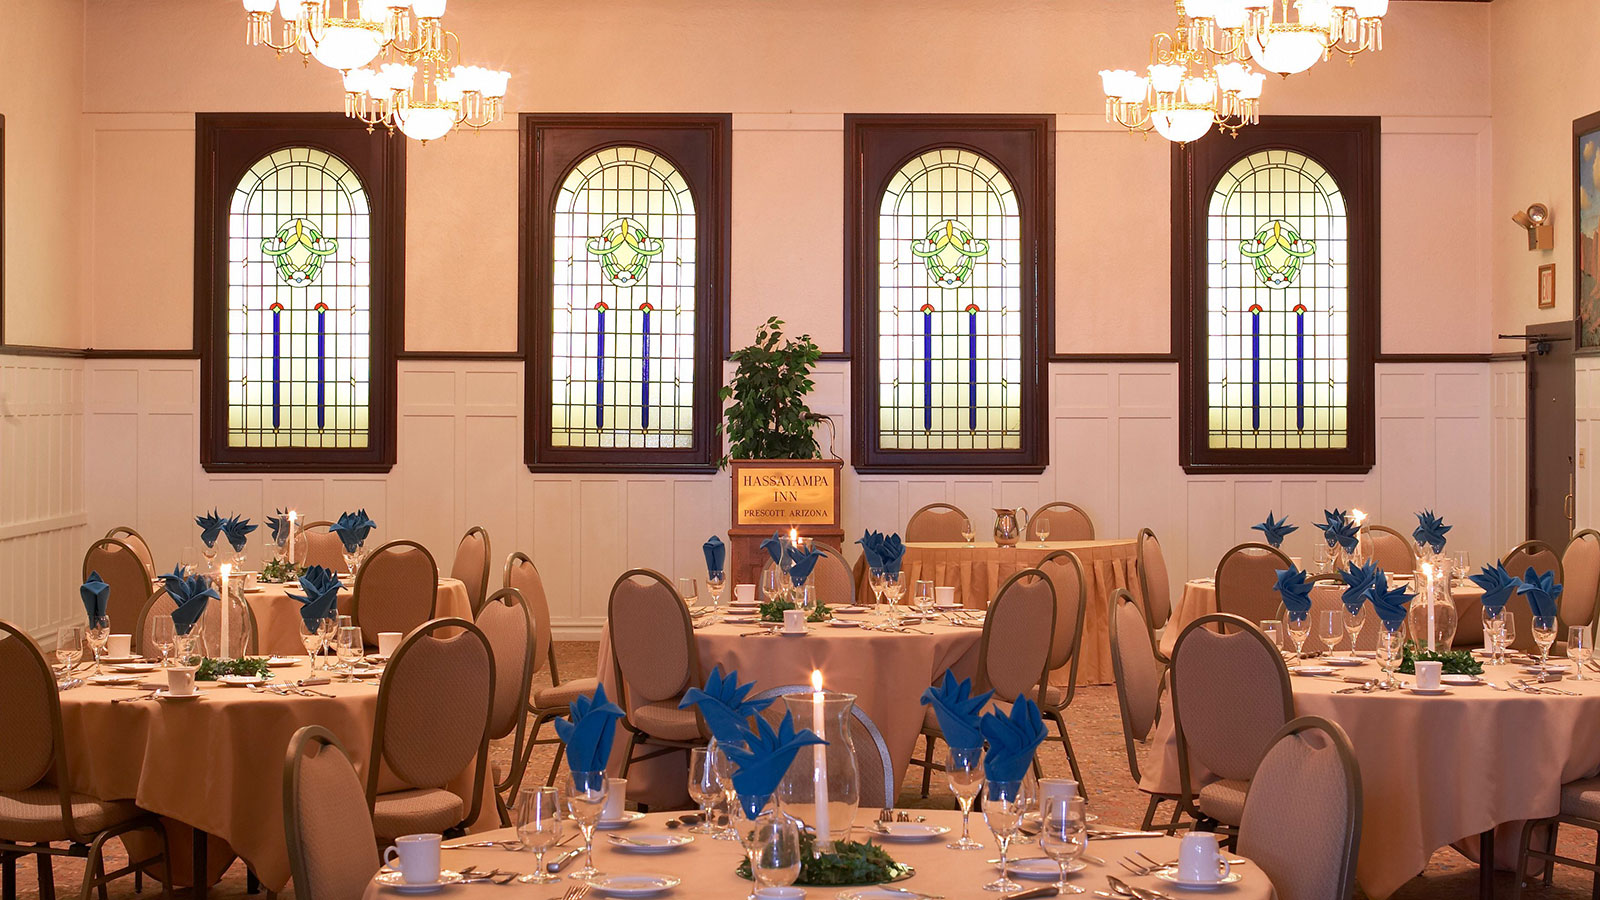 Image of banquet meeting event space Hassayampa Inn, 1927, Member of Historic Hotels of America, in Prescott, Arizona, Special Occasions